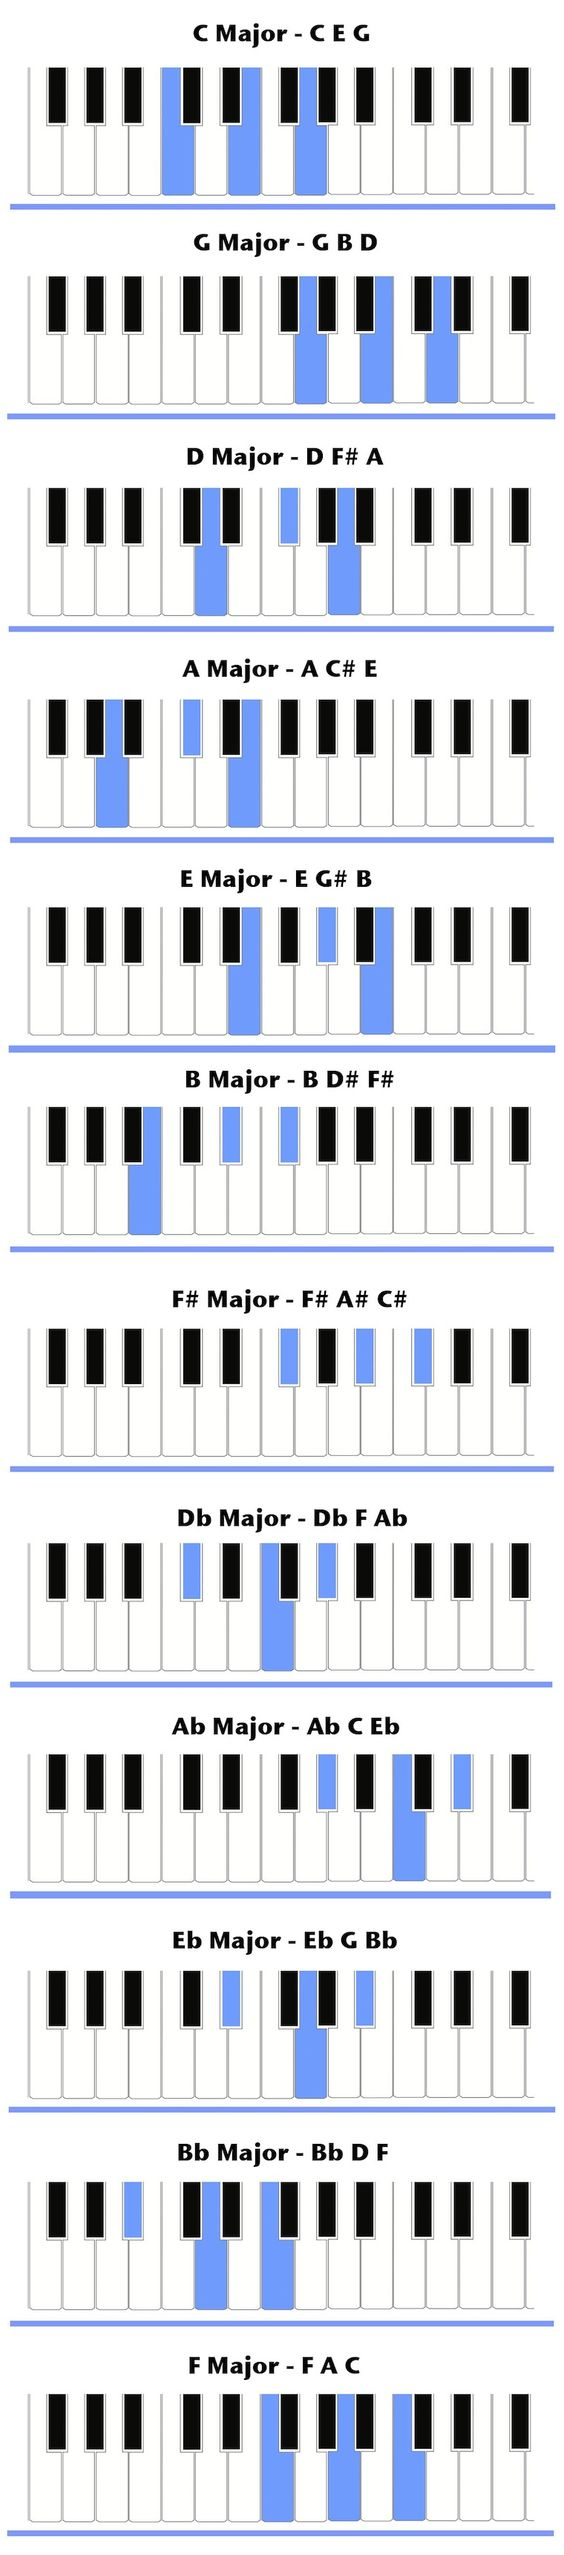 D chords Piano chords with the root note D including pictures and explanation  D chord categories D Dm D7 Dm7 Dmaj7 D6 Dm6 D69 D5 D9 Dm9 Dmaj9 D11 D13 Dadd D7